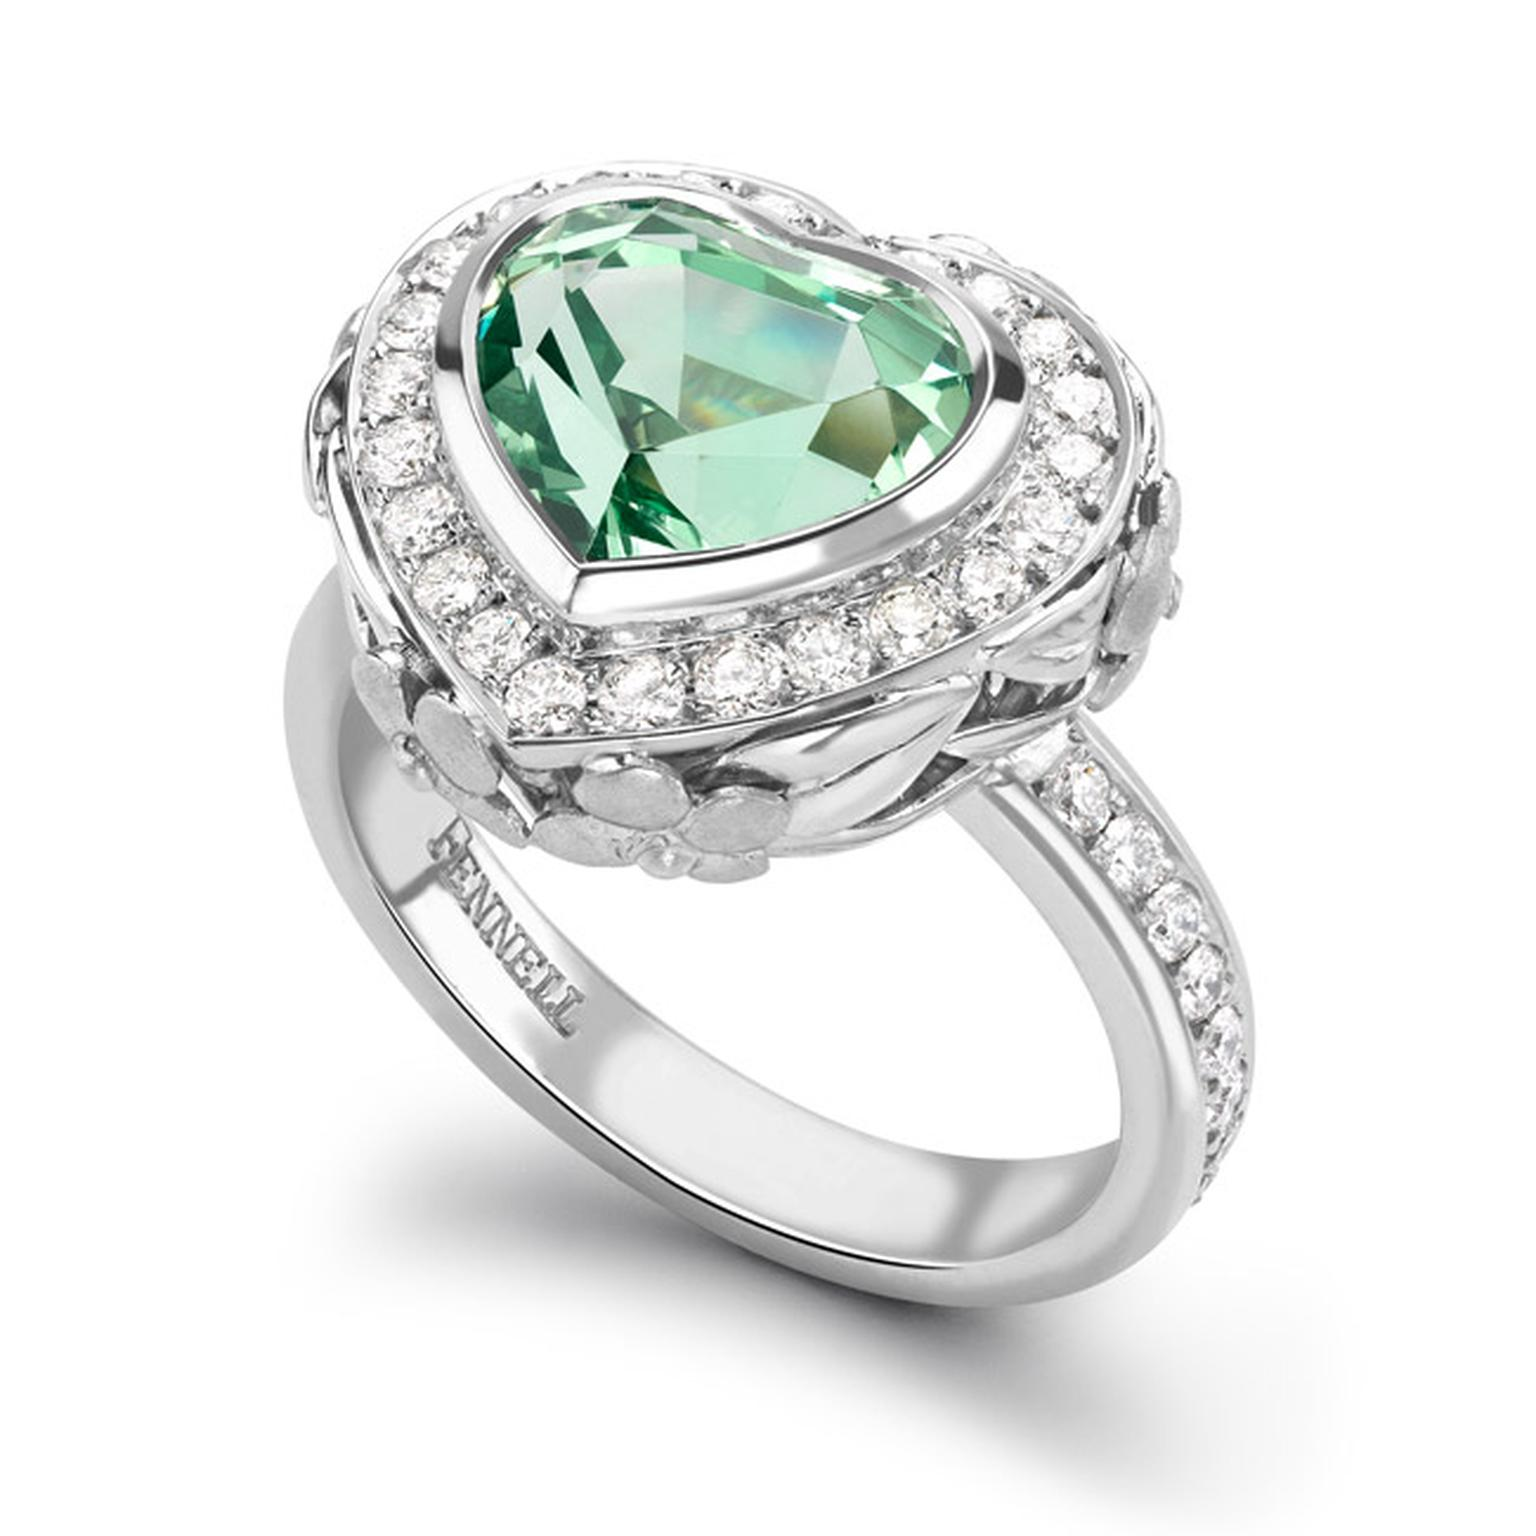 The-Fennell-tsavorite-ring-main